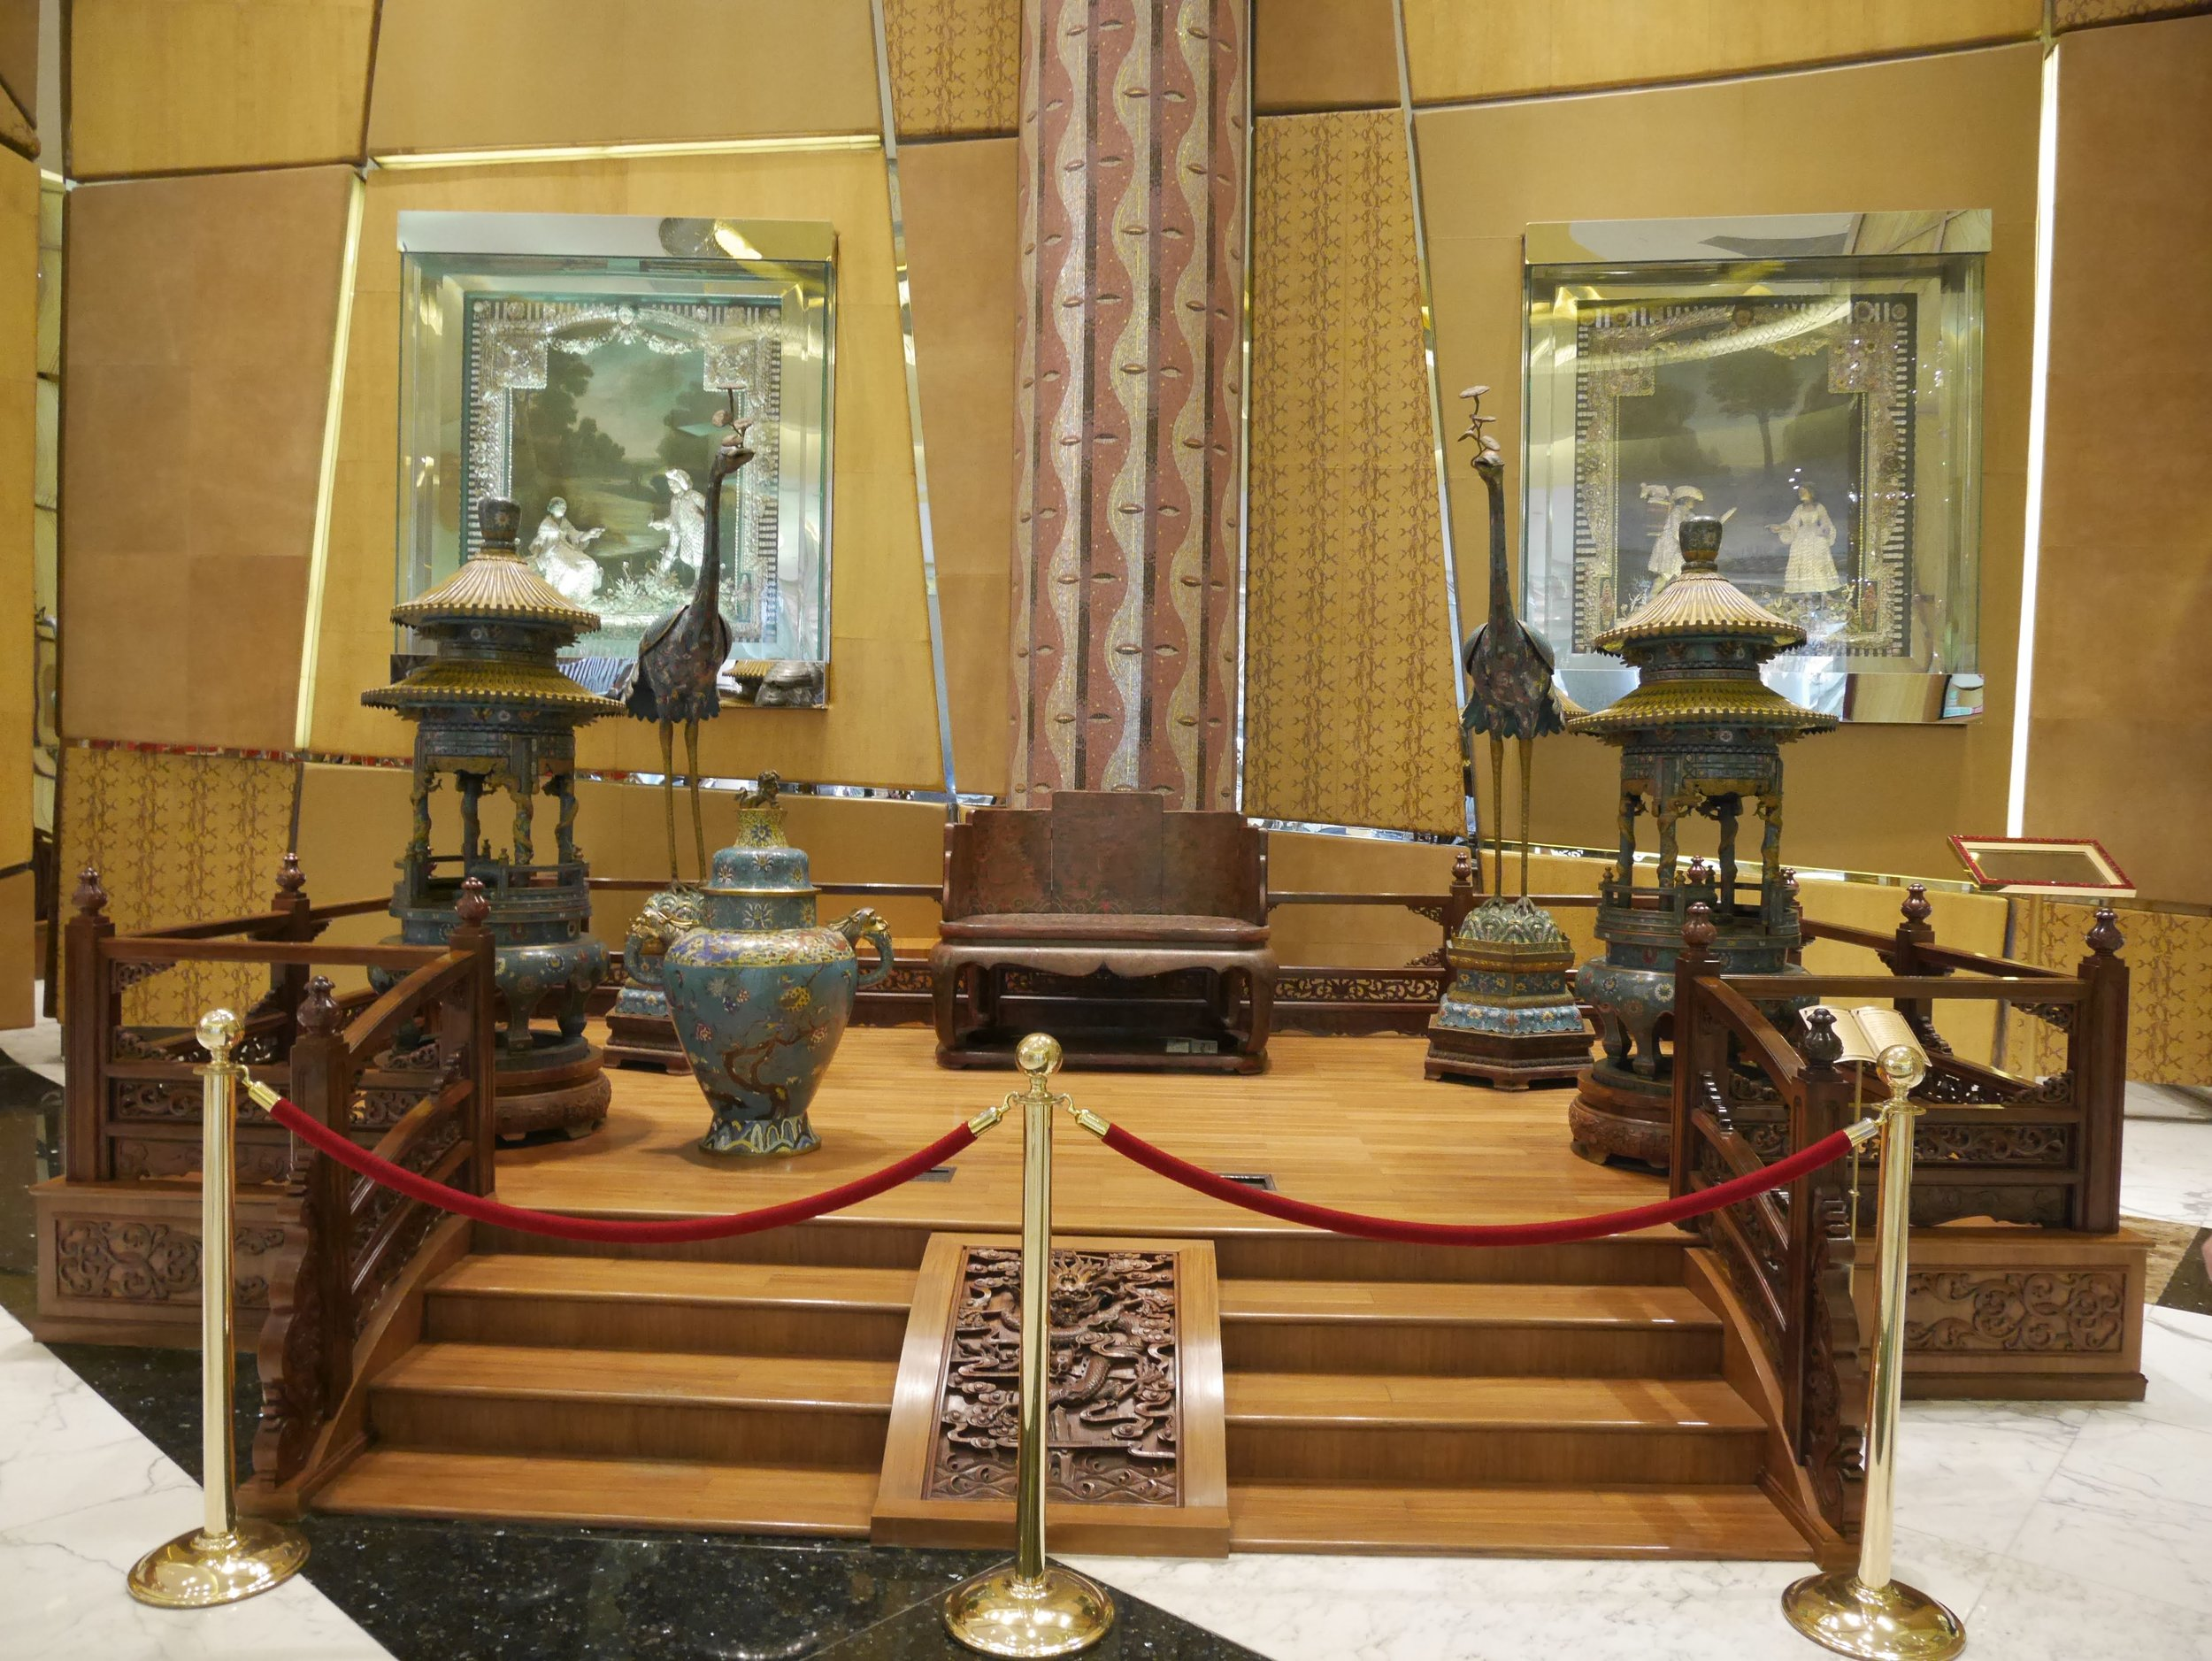 The Dragon Throne of the Chinese Emperors is on display in the lobby of the Grand Lisboa Macau.